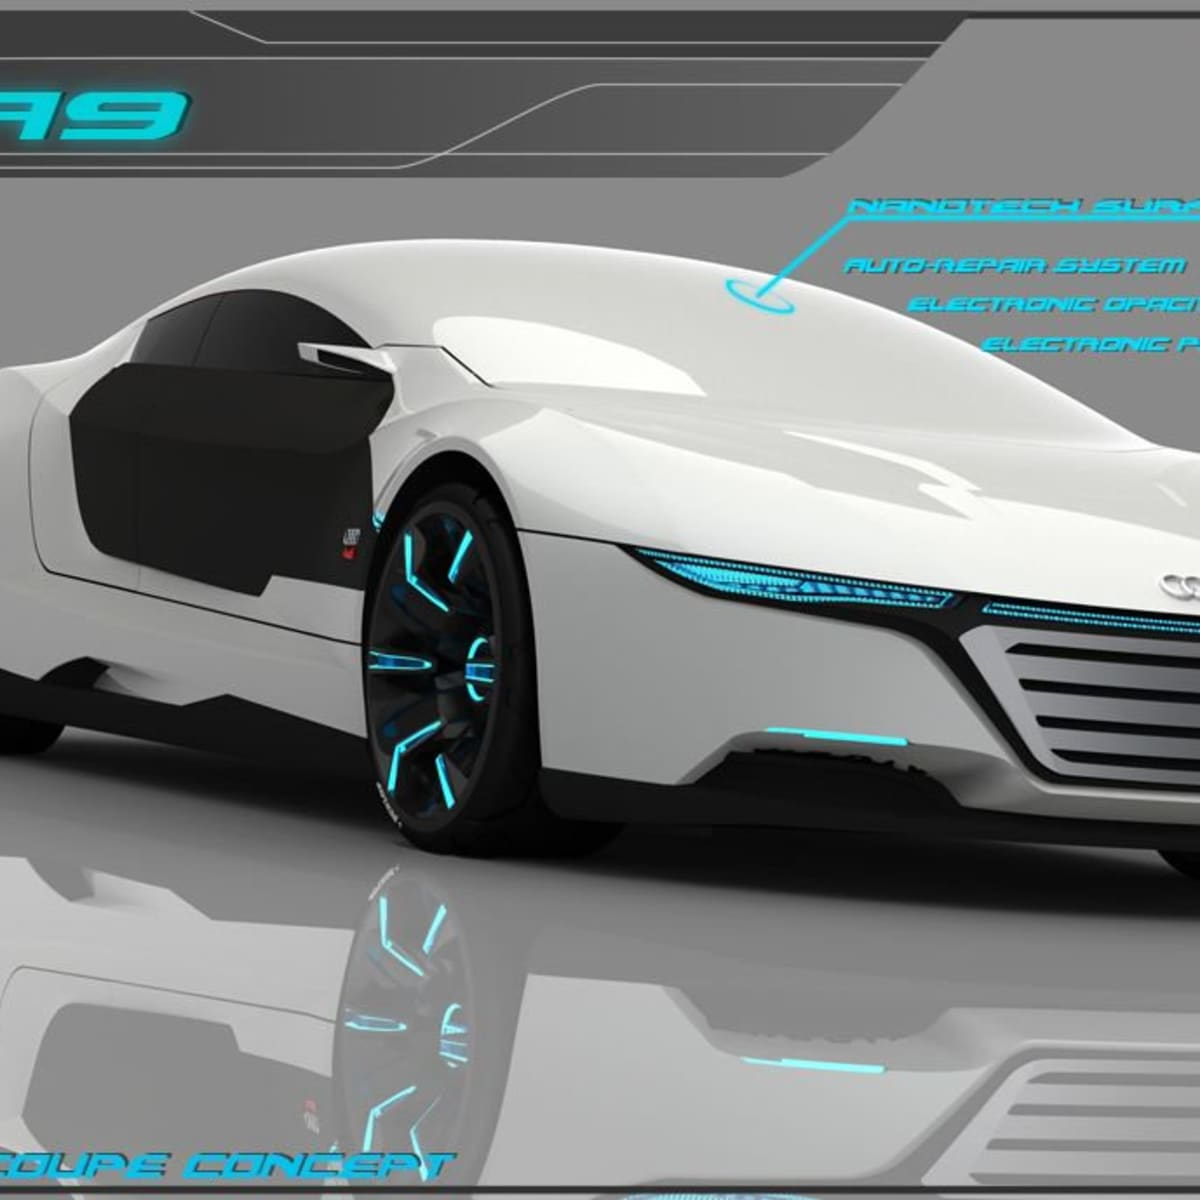 2020 Audi A9 Concept Specs and Review